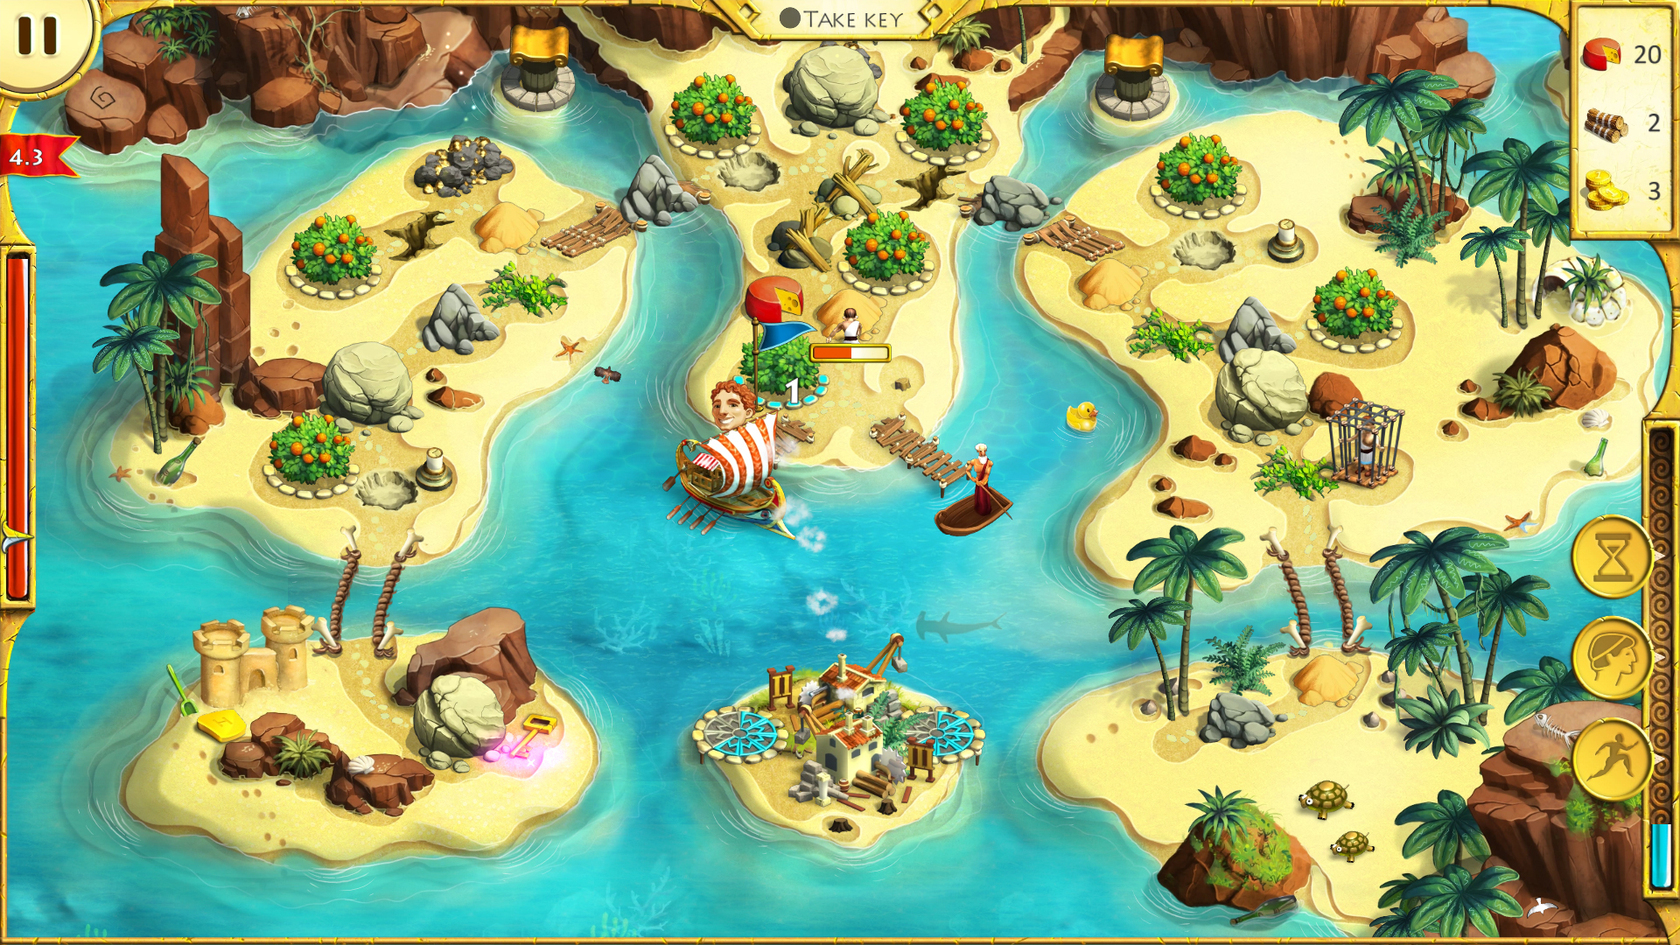 12 labors of hercules game